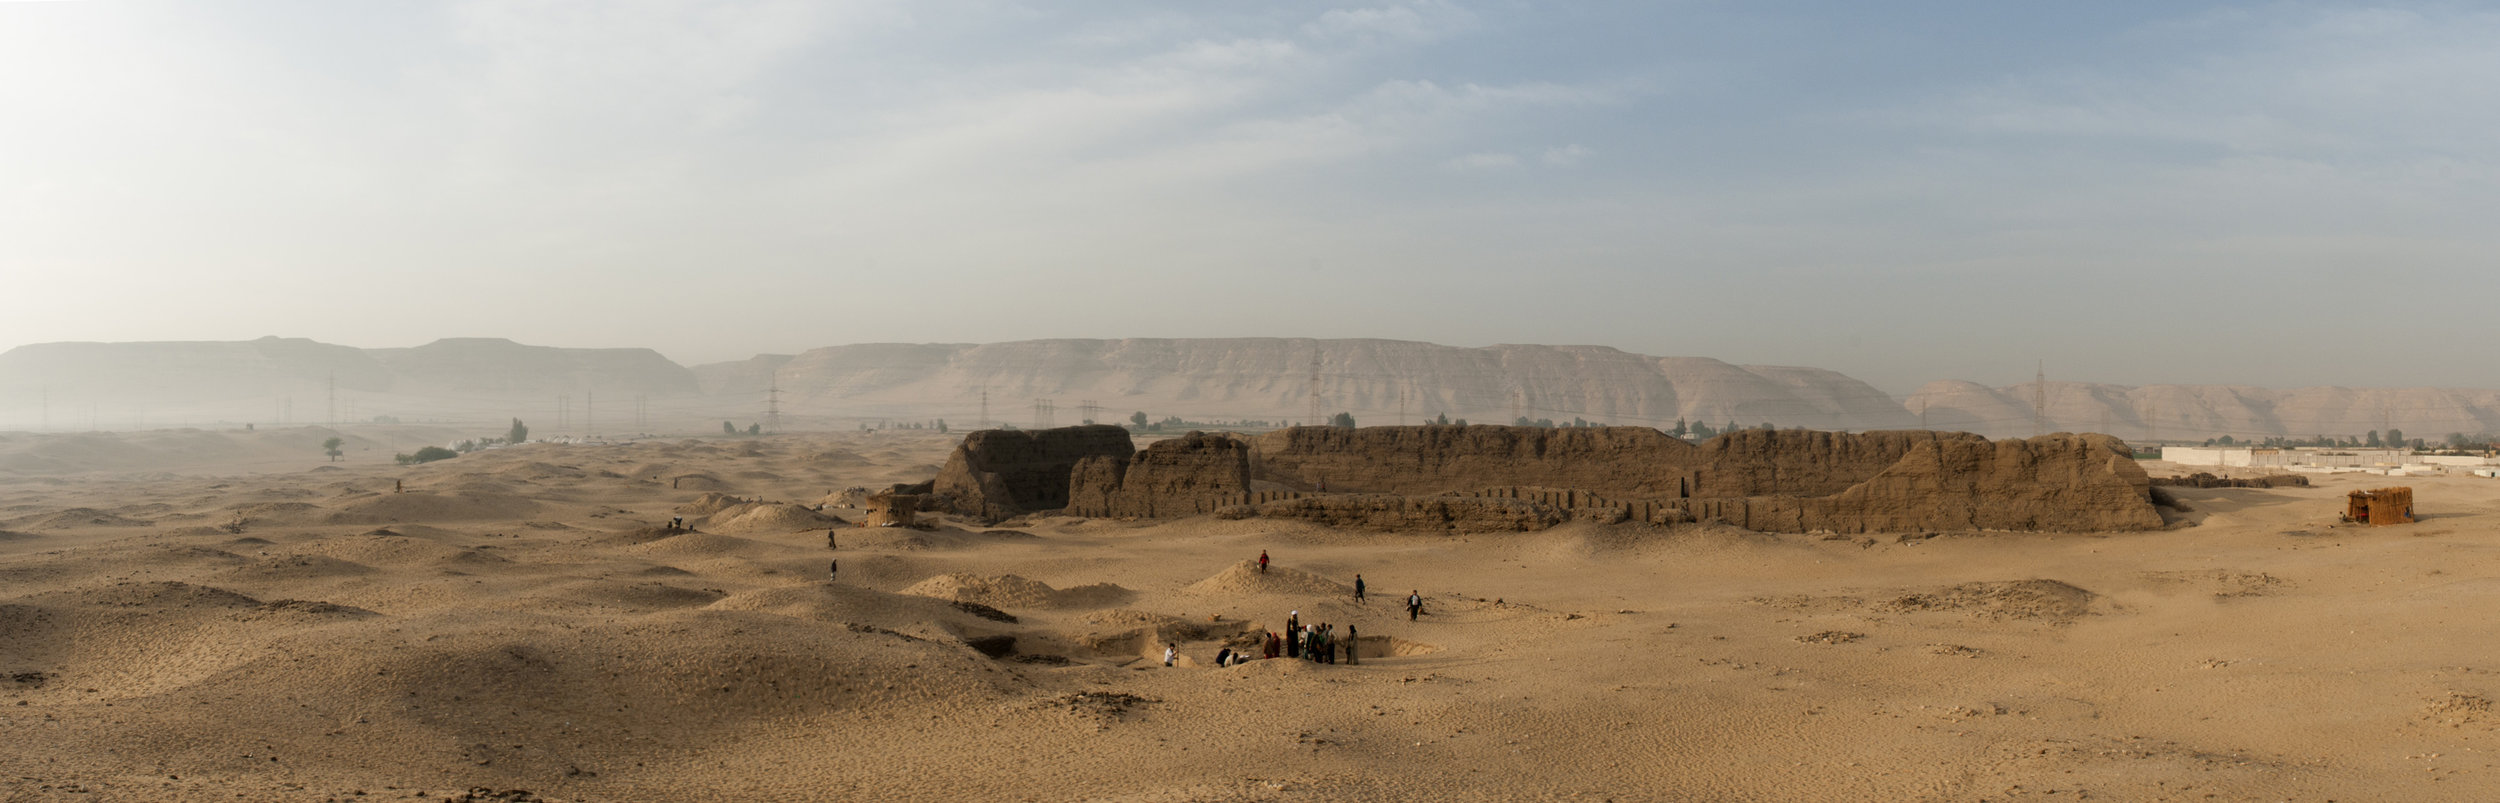 Fig. 2. King Khasekhemwy's Second Dynasty cultic enclosure (c. 2650 BCE), the Shunet el-Zebib at the Abydos North Cemetery. Photo: Greg Maka / North Abydos Expedition © 2012